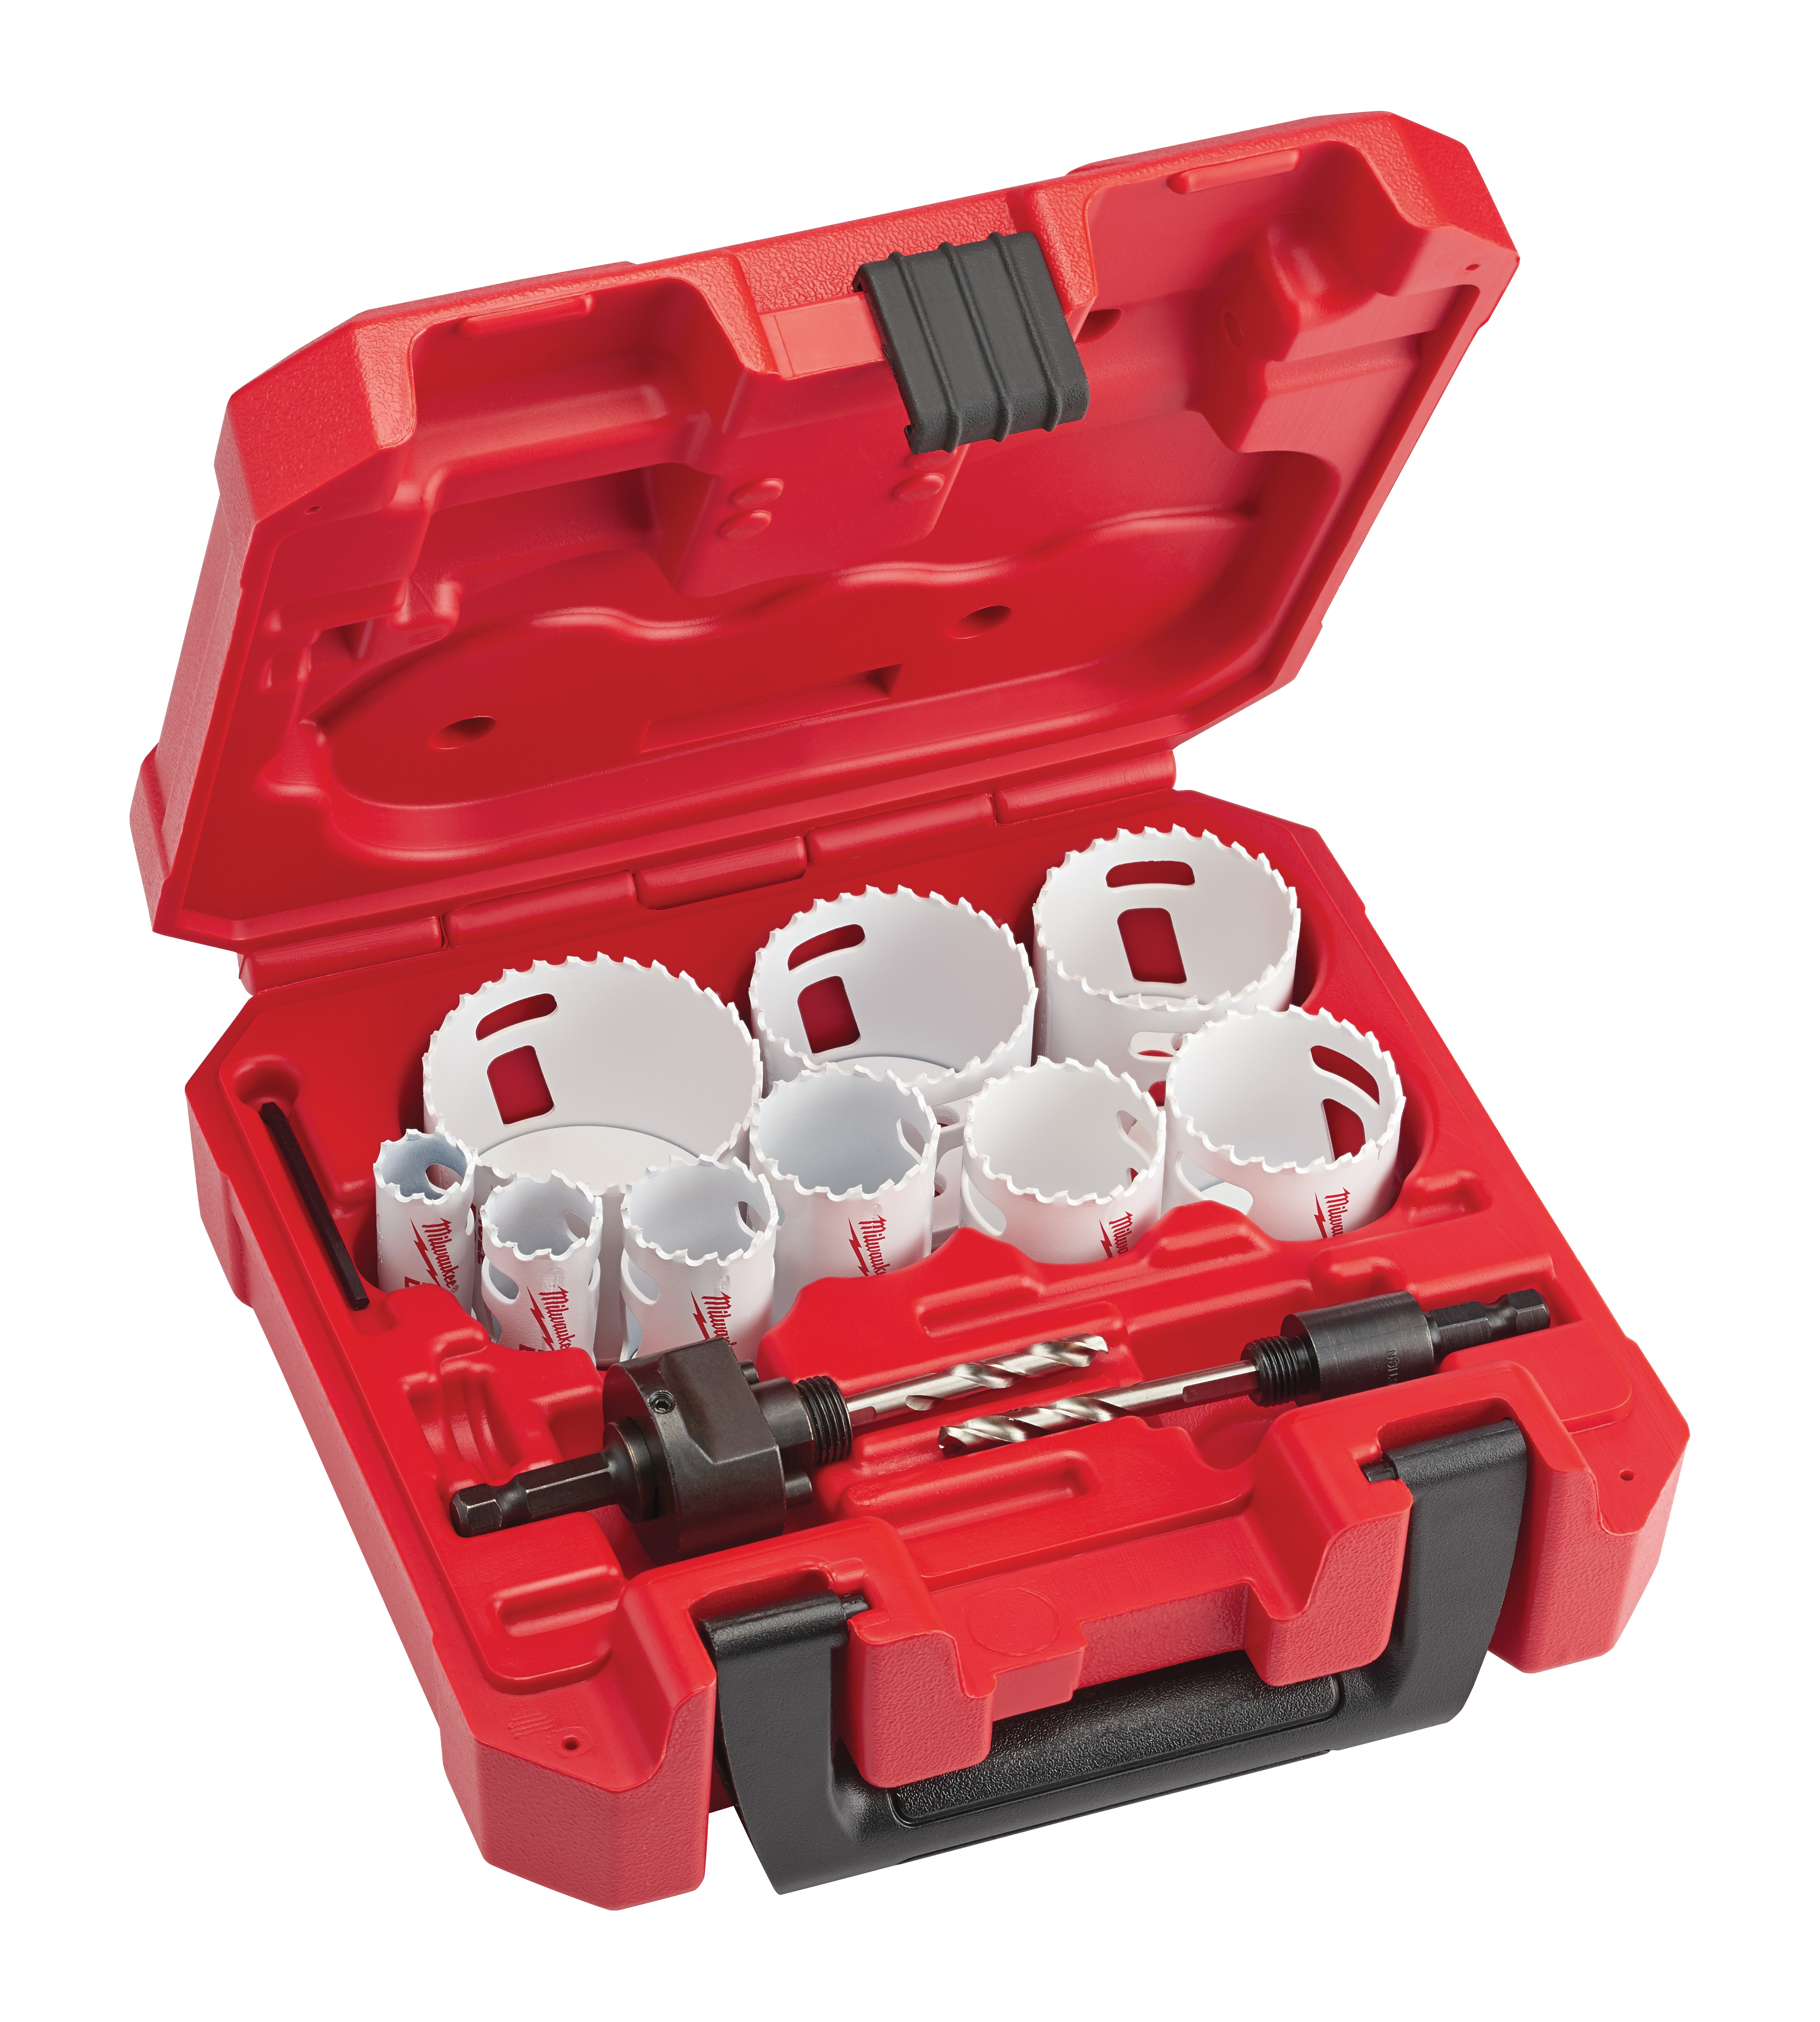 Milwaukee® 49-22-4025 Hole Dozer™ General Purpose Hole Saw Kit, 13 Pieces, For Use With 49-56-7210, 49-56-7240, 49-56-7250 and 49-56-9100 Quick-Change Arbor, Bi-Metal/HSS